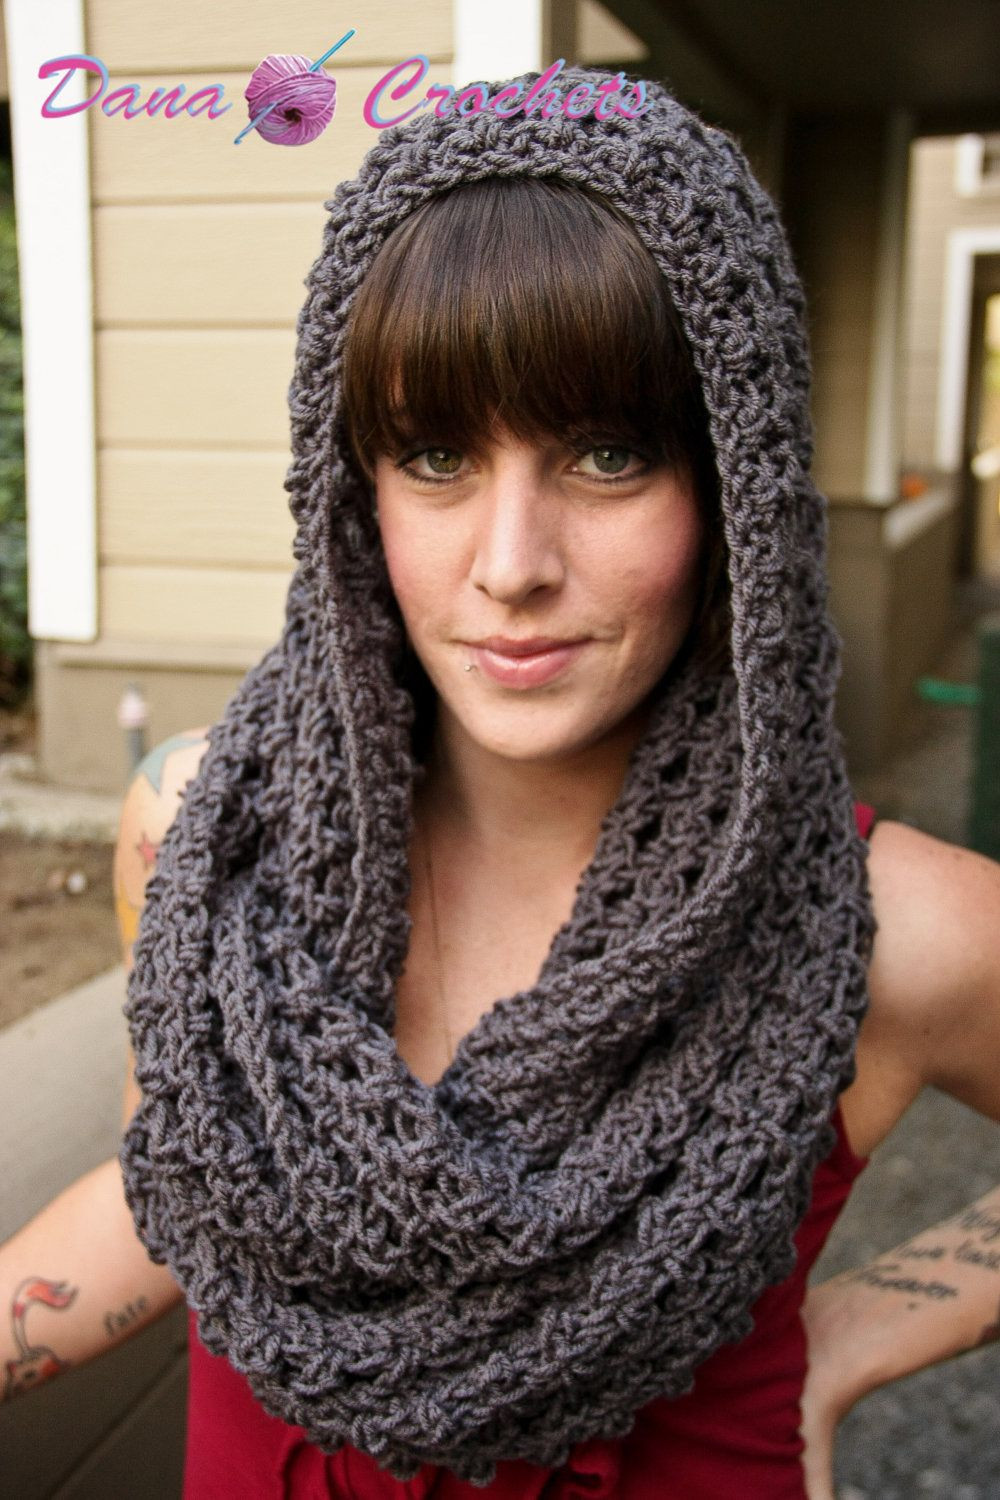 Awesome Chunky Hooded Infinity Scarf Cowl Crochet by Crochet Cowl Scarf Pattern Of Superb 47 Pics Crochet Cowl Scarf Pattern